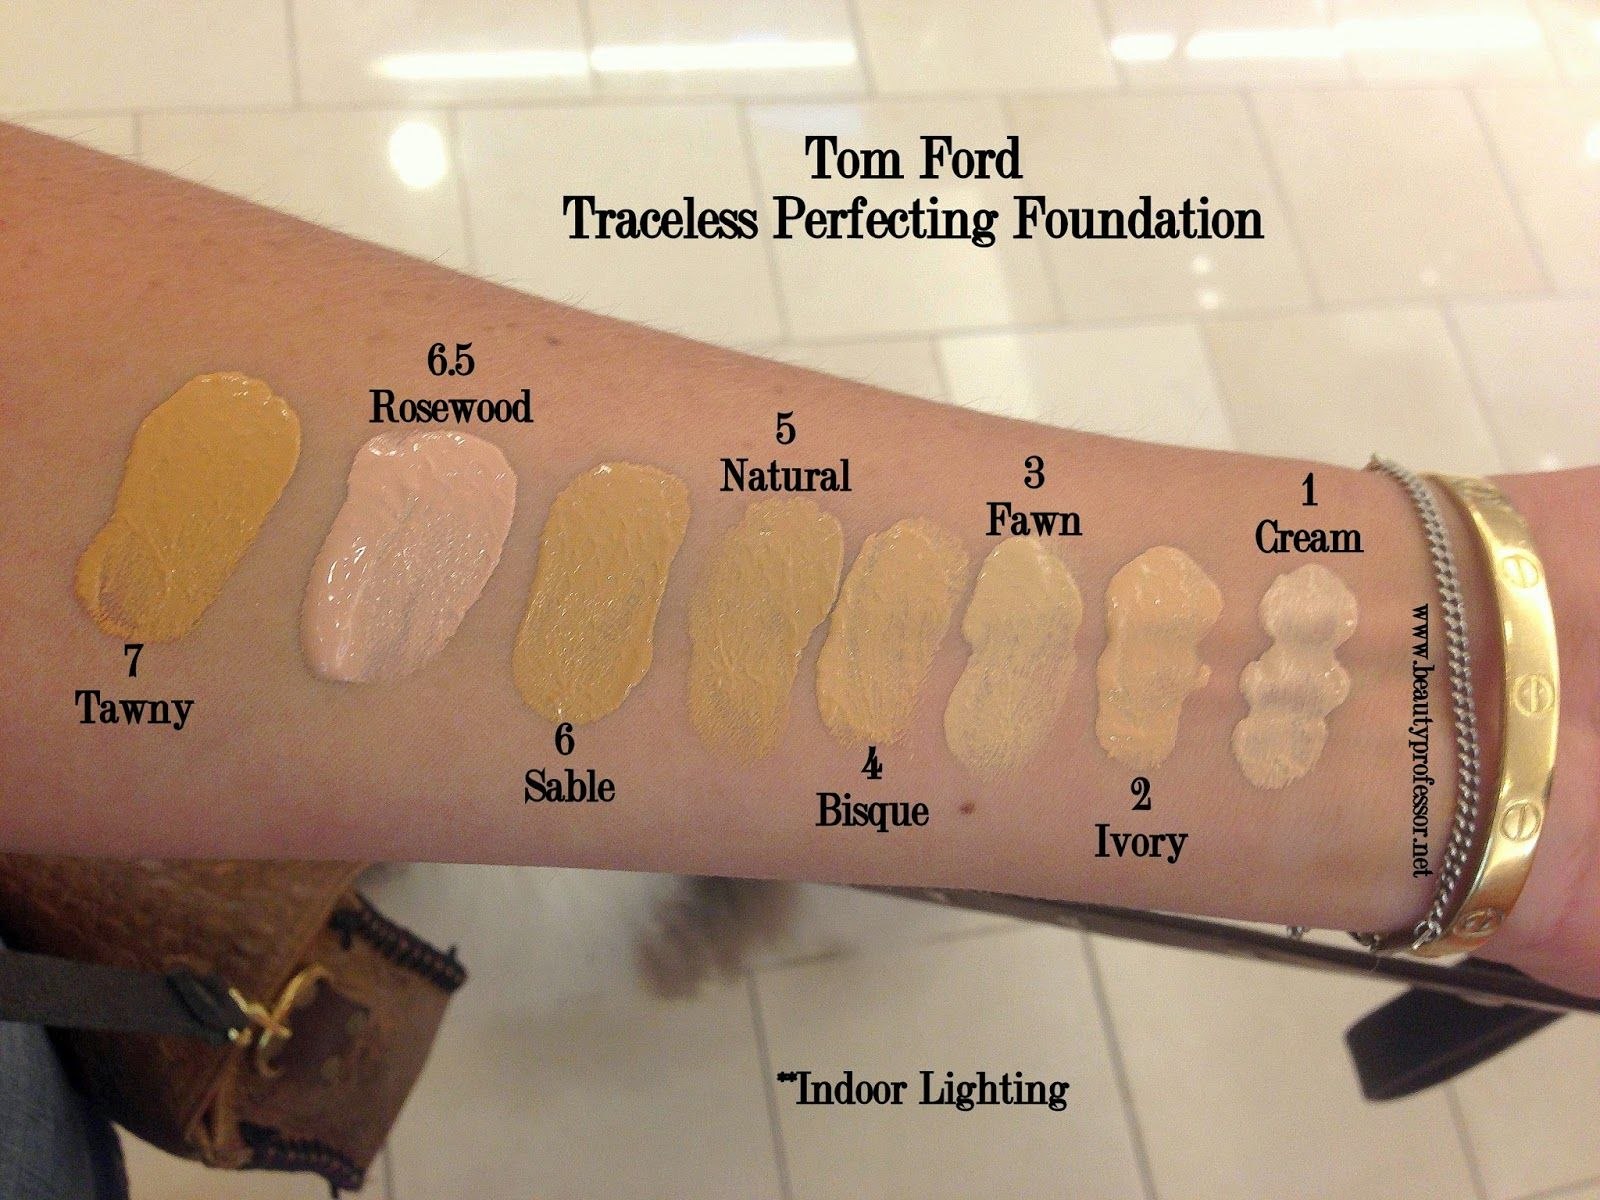 Tom Ford Traceless Perfecting Foundation Swatches Of All